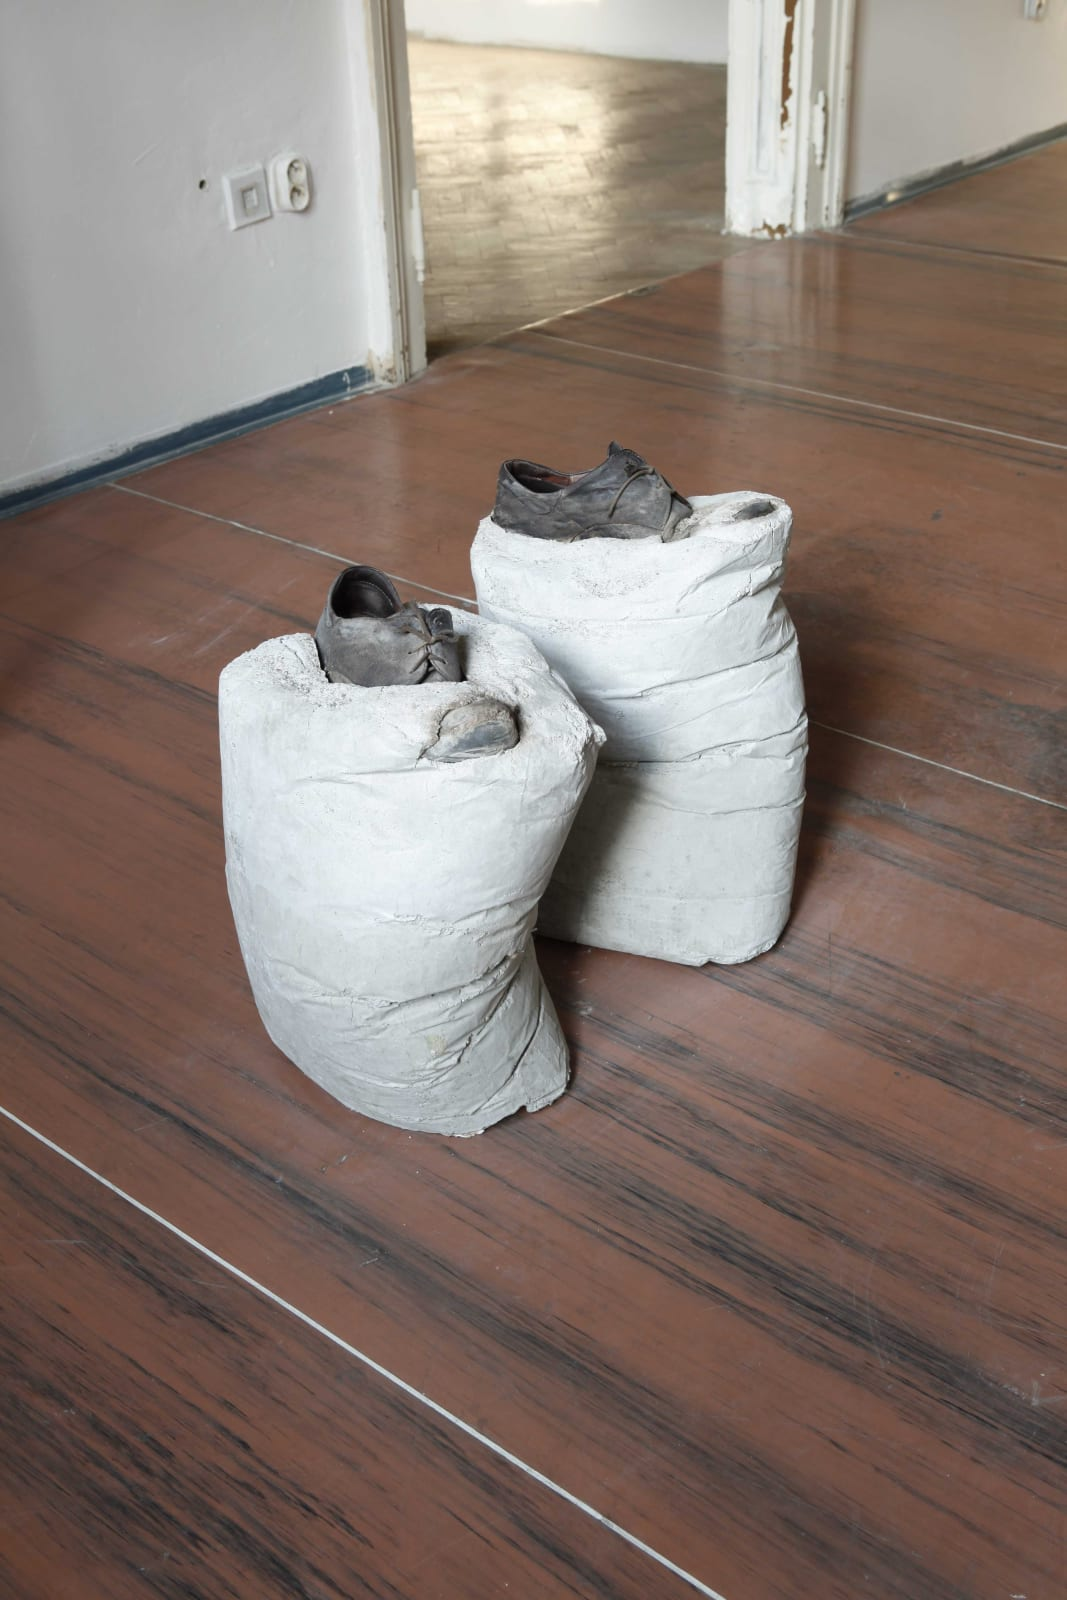 Kristof Kintera, Me, waiting in another room, 2009, shoes, concrete, 65 x 40 x 55 cm